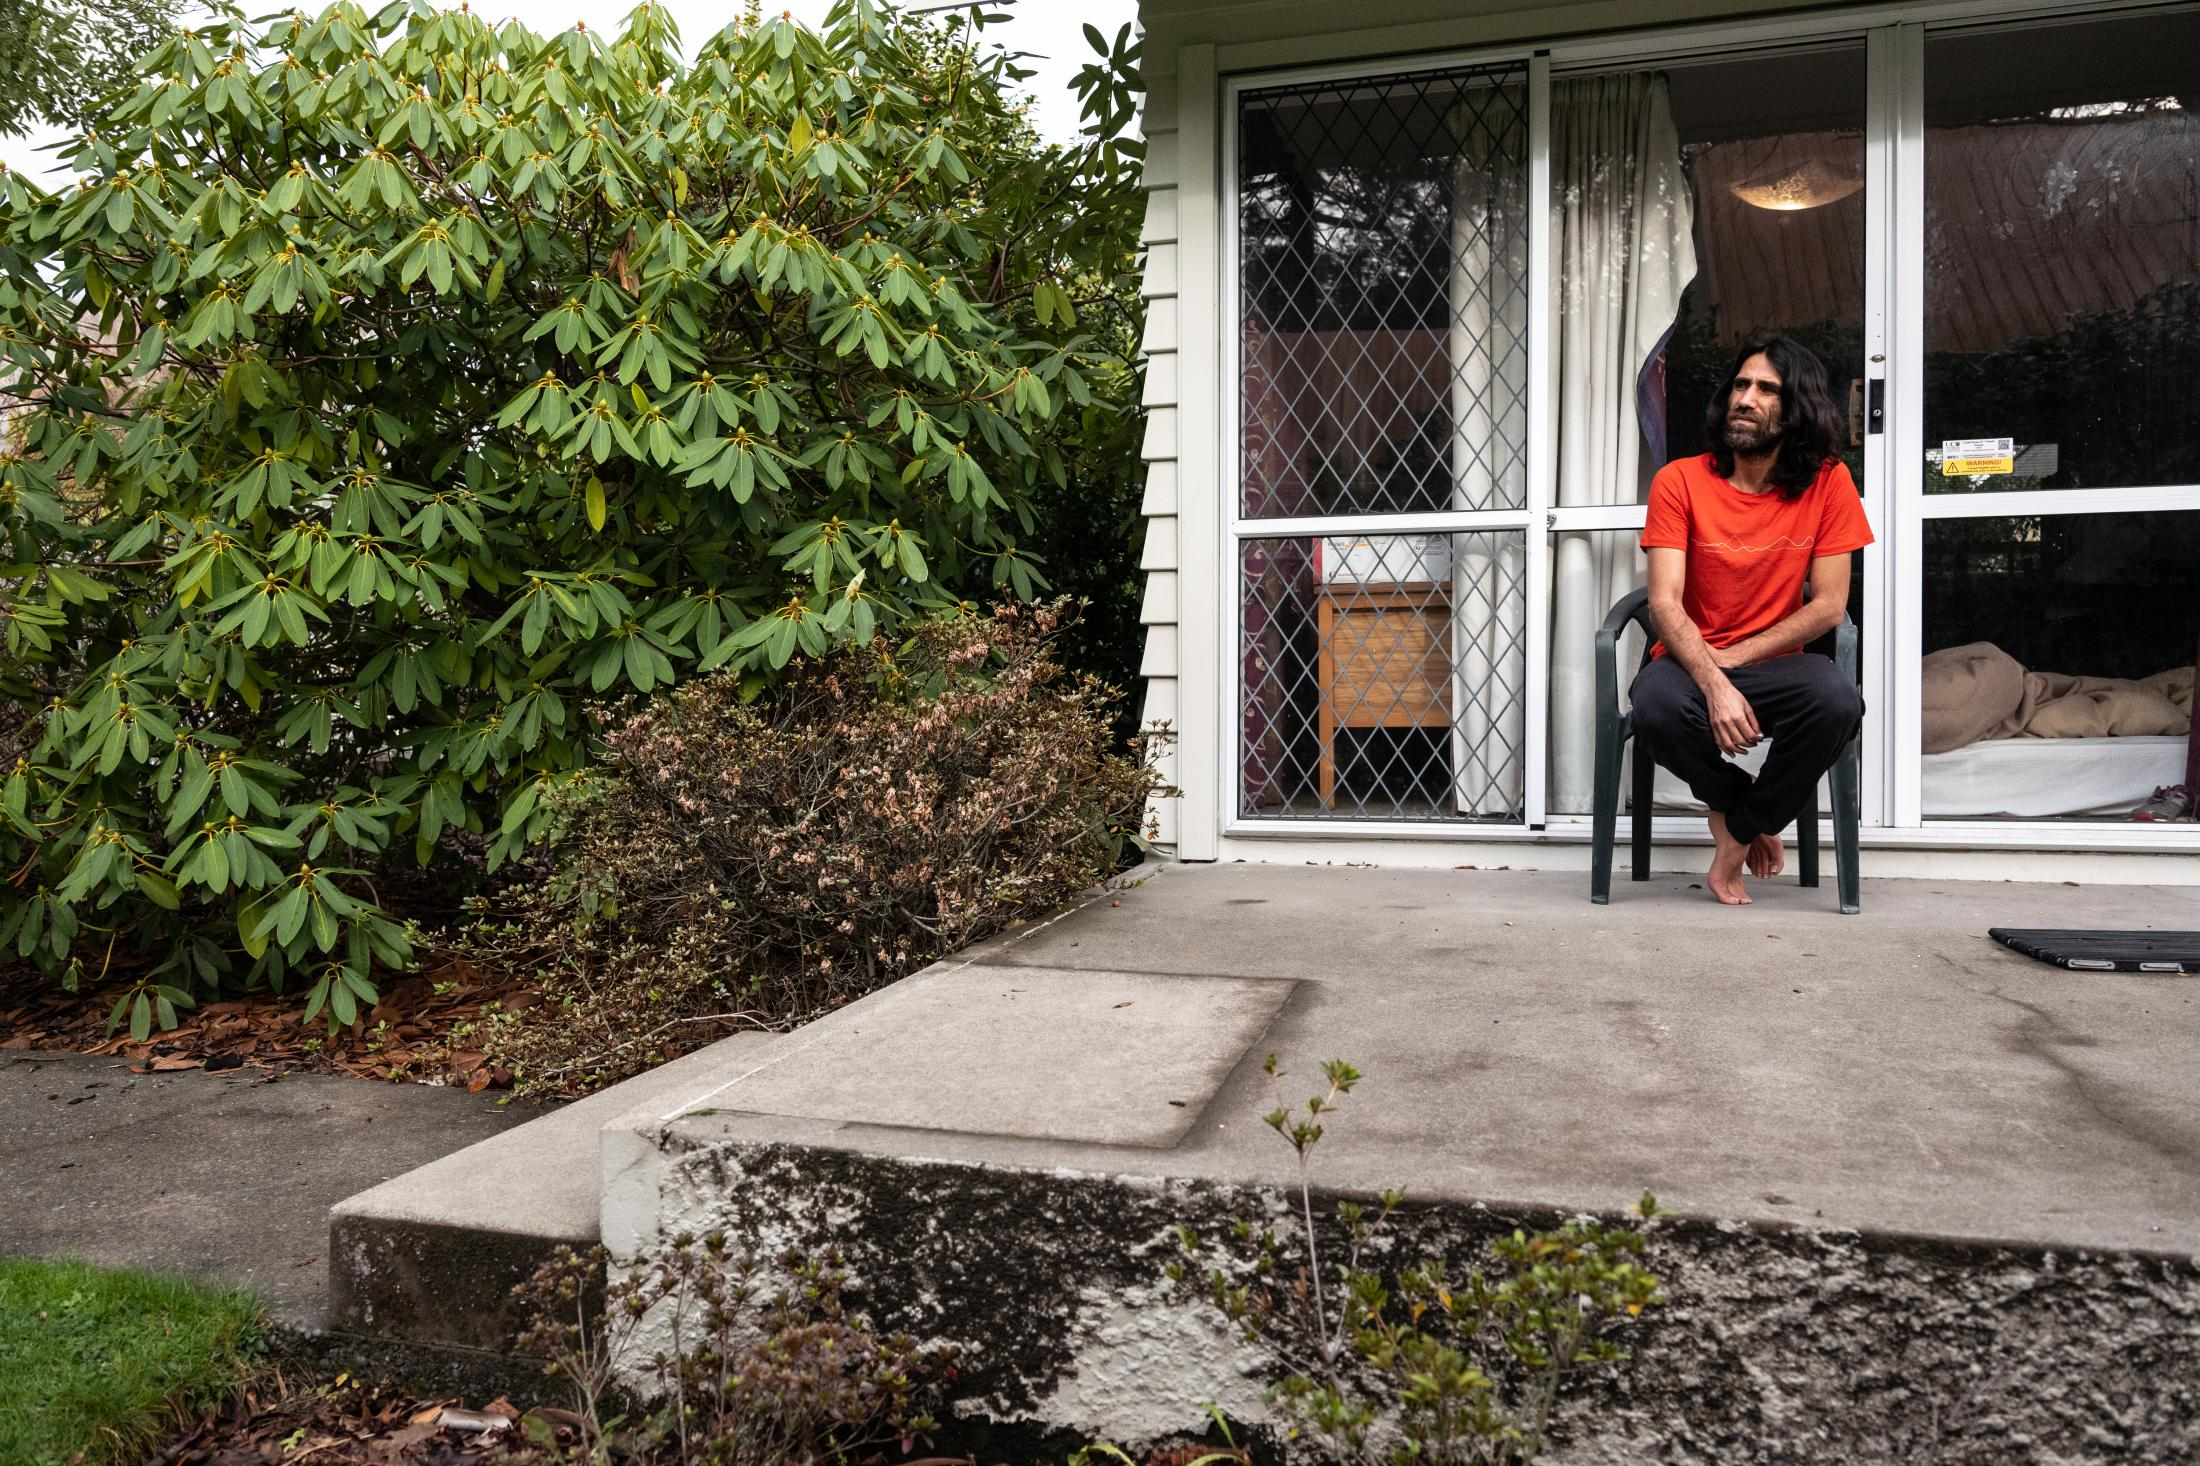 Behrouz Boochani on the back porch outside his house in Christchurch, New Zealand. July 16th, 2020. Birgit Krippner for The New York Times.